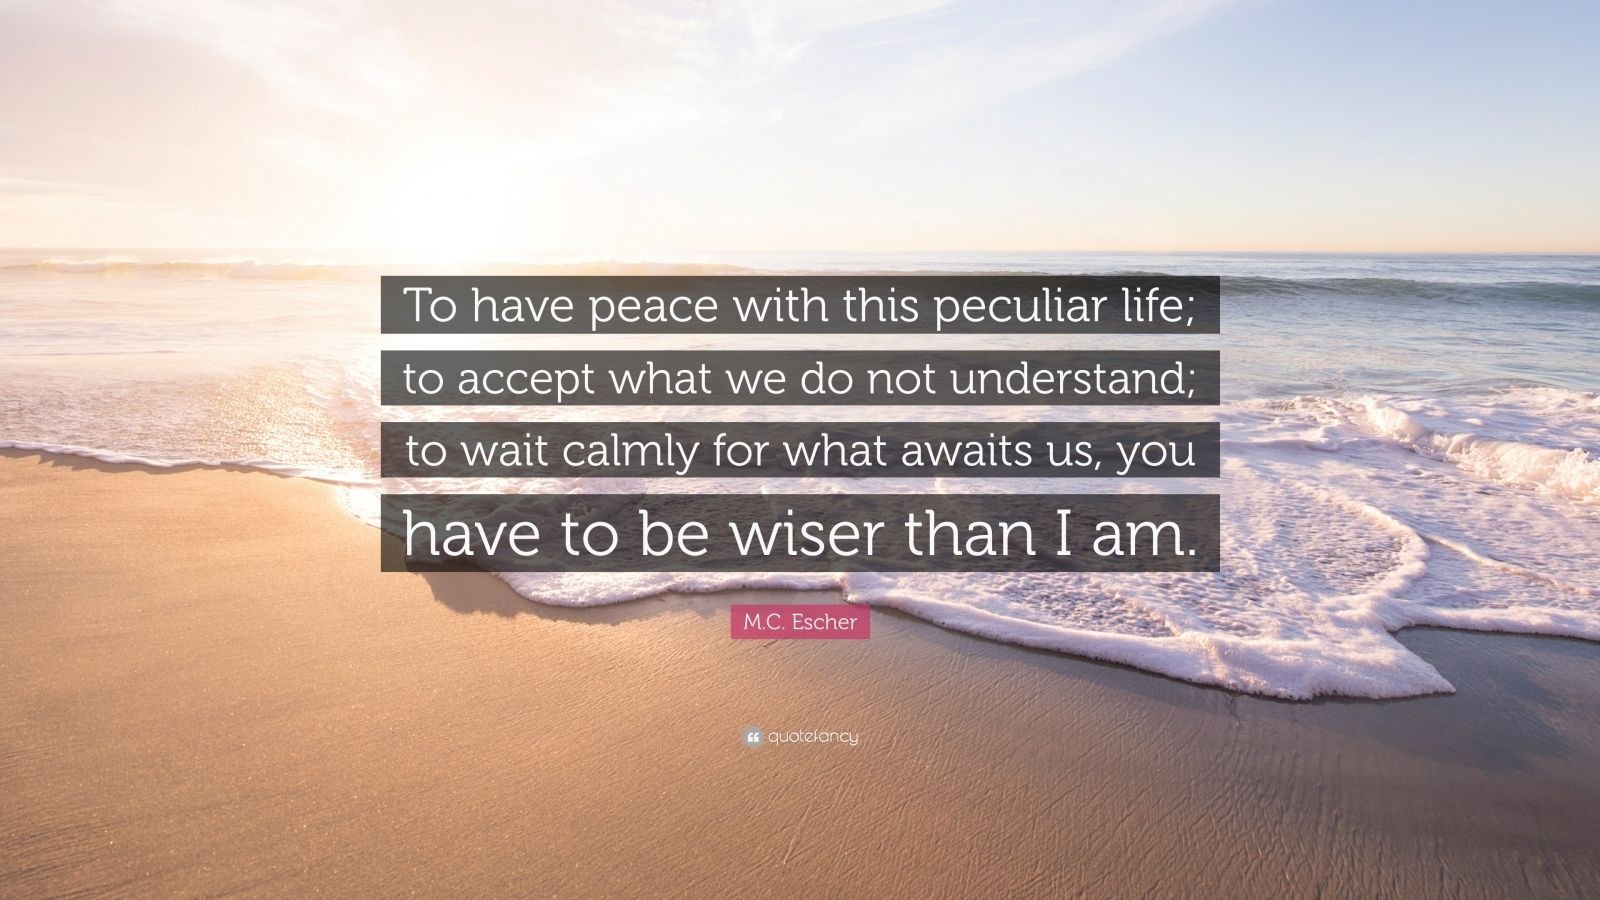 """M.C. Escher Quote: """"To have peace with this peculiar life; to accept what we do not understand; to wait calmly for what awaits us, you have to be wiser than I am."""""""